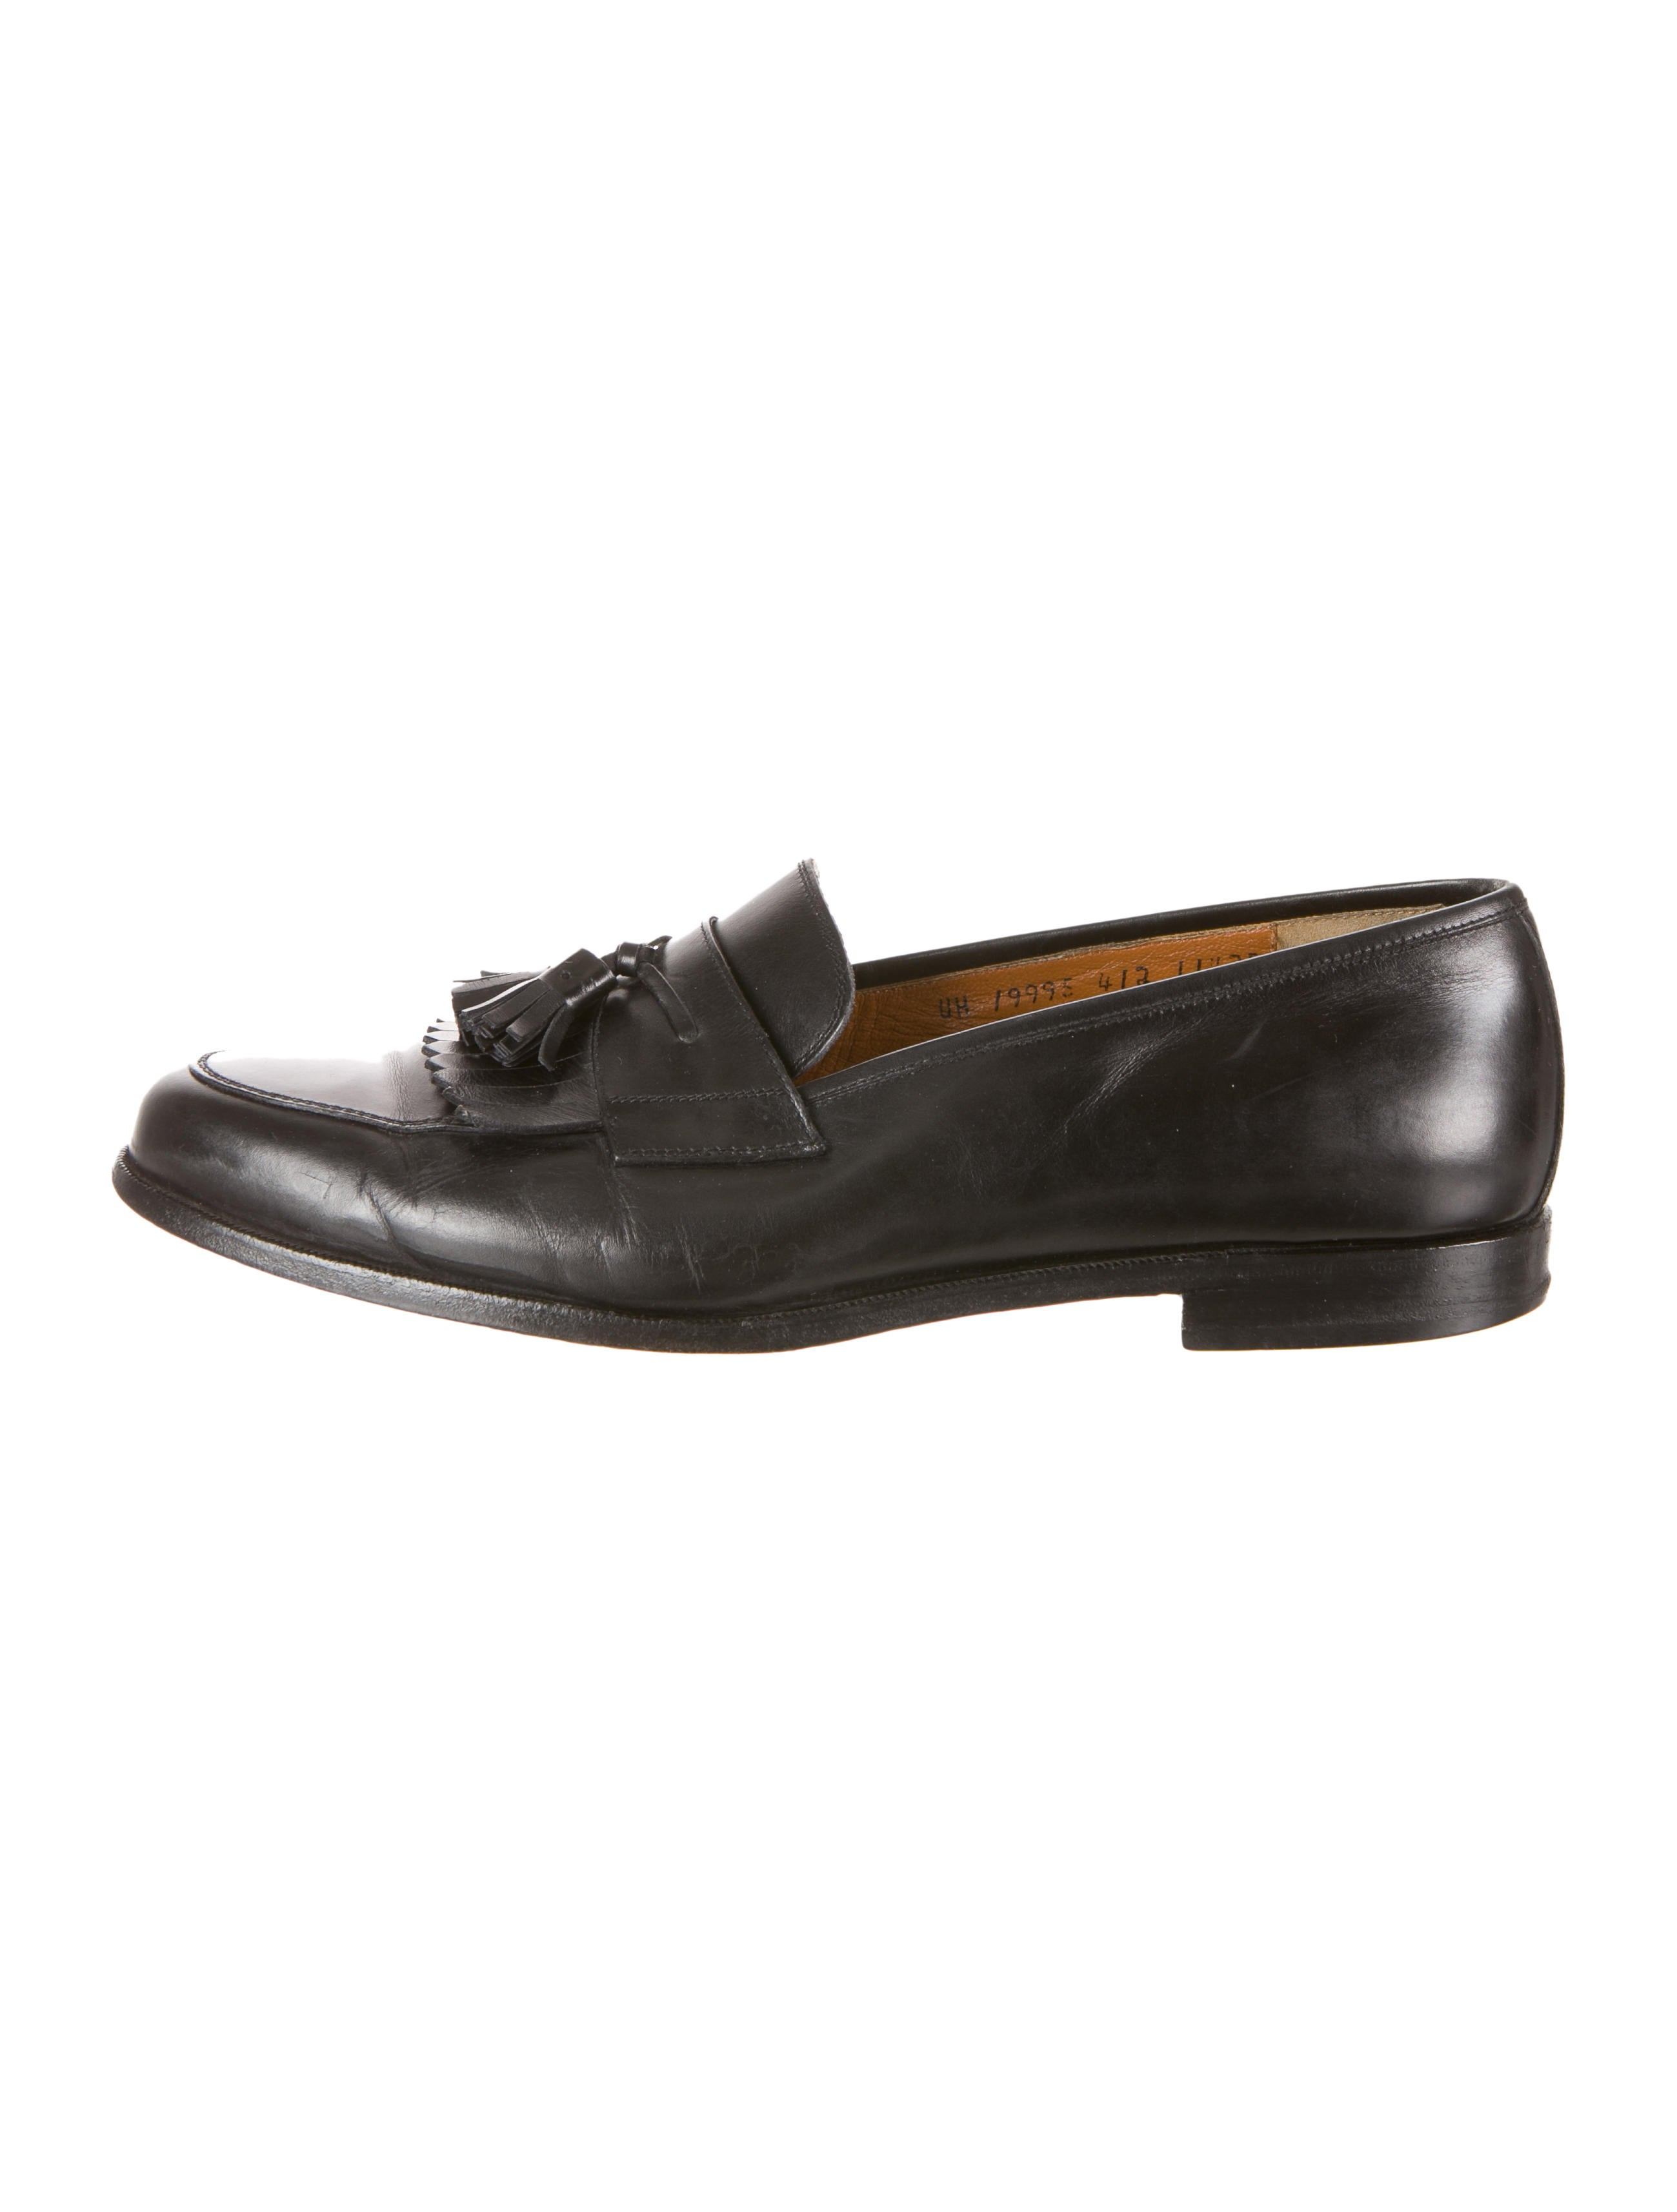 salvatore ferragamo loafers mens shoes sal24472 the